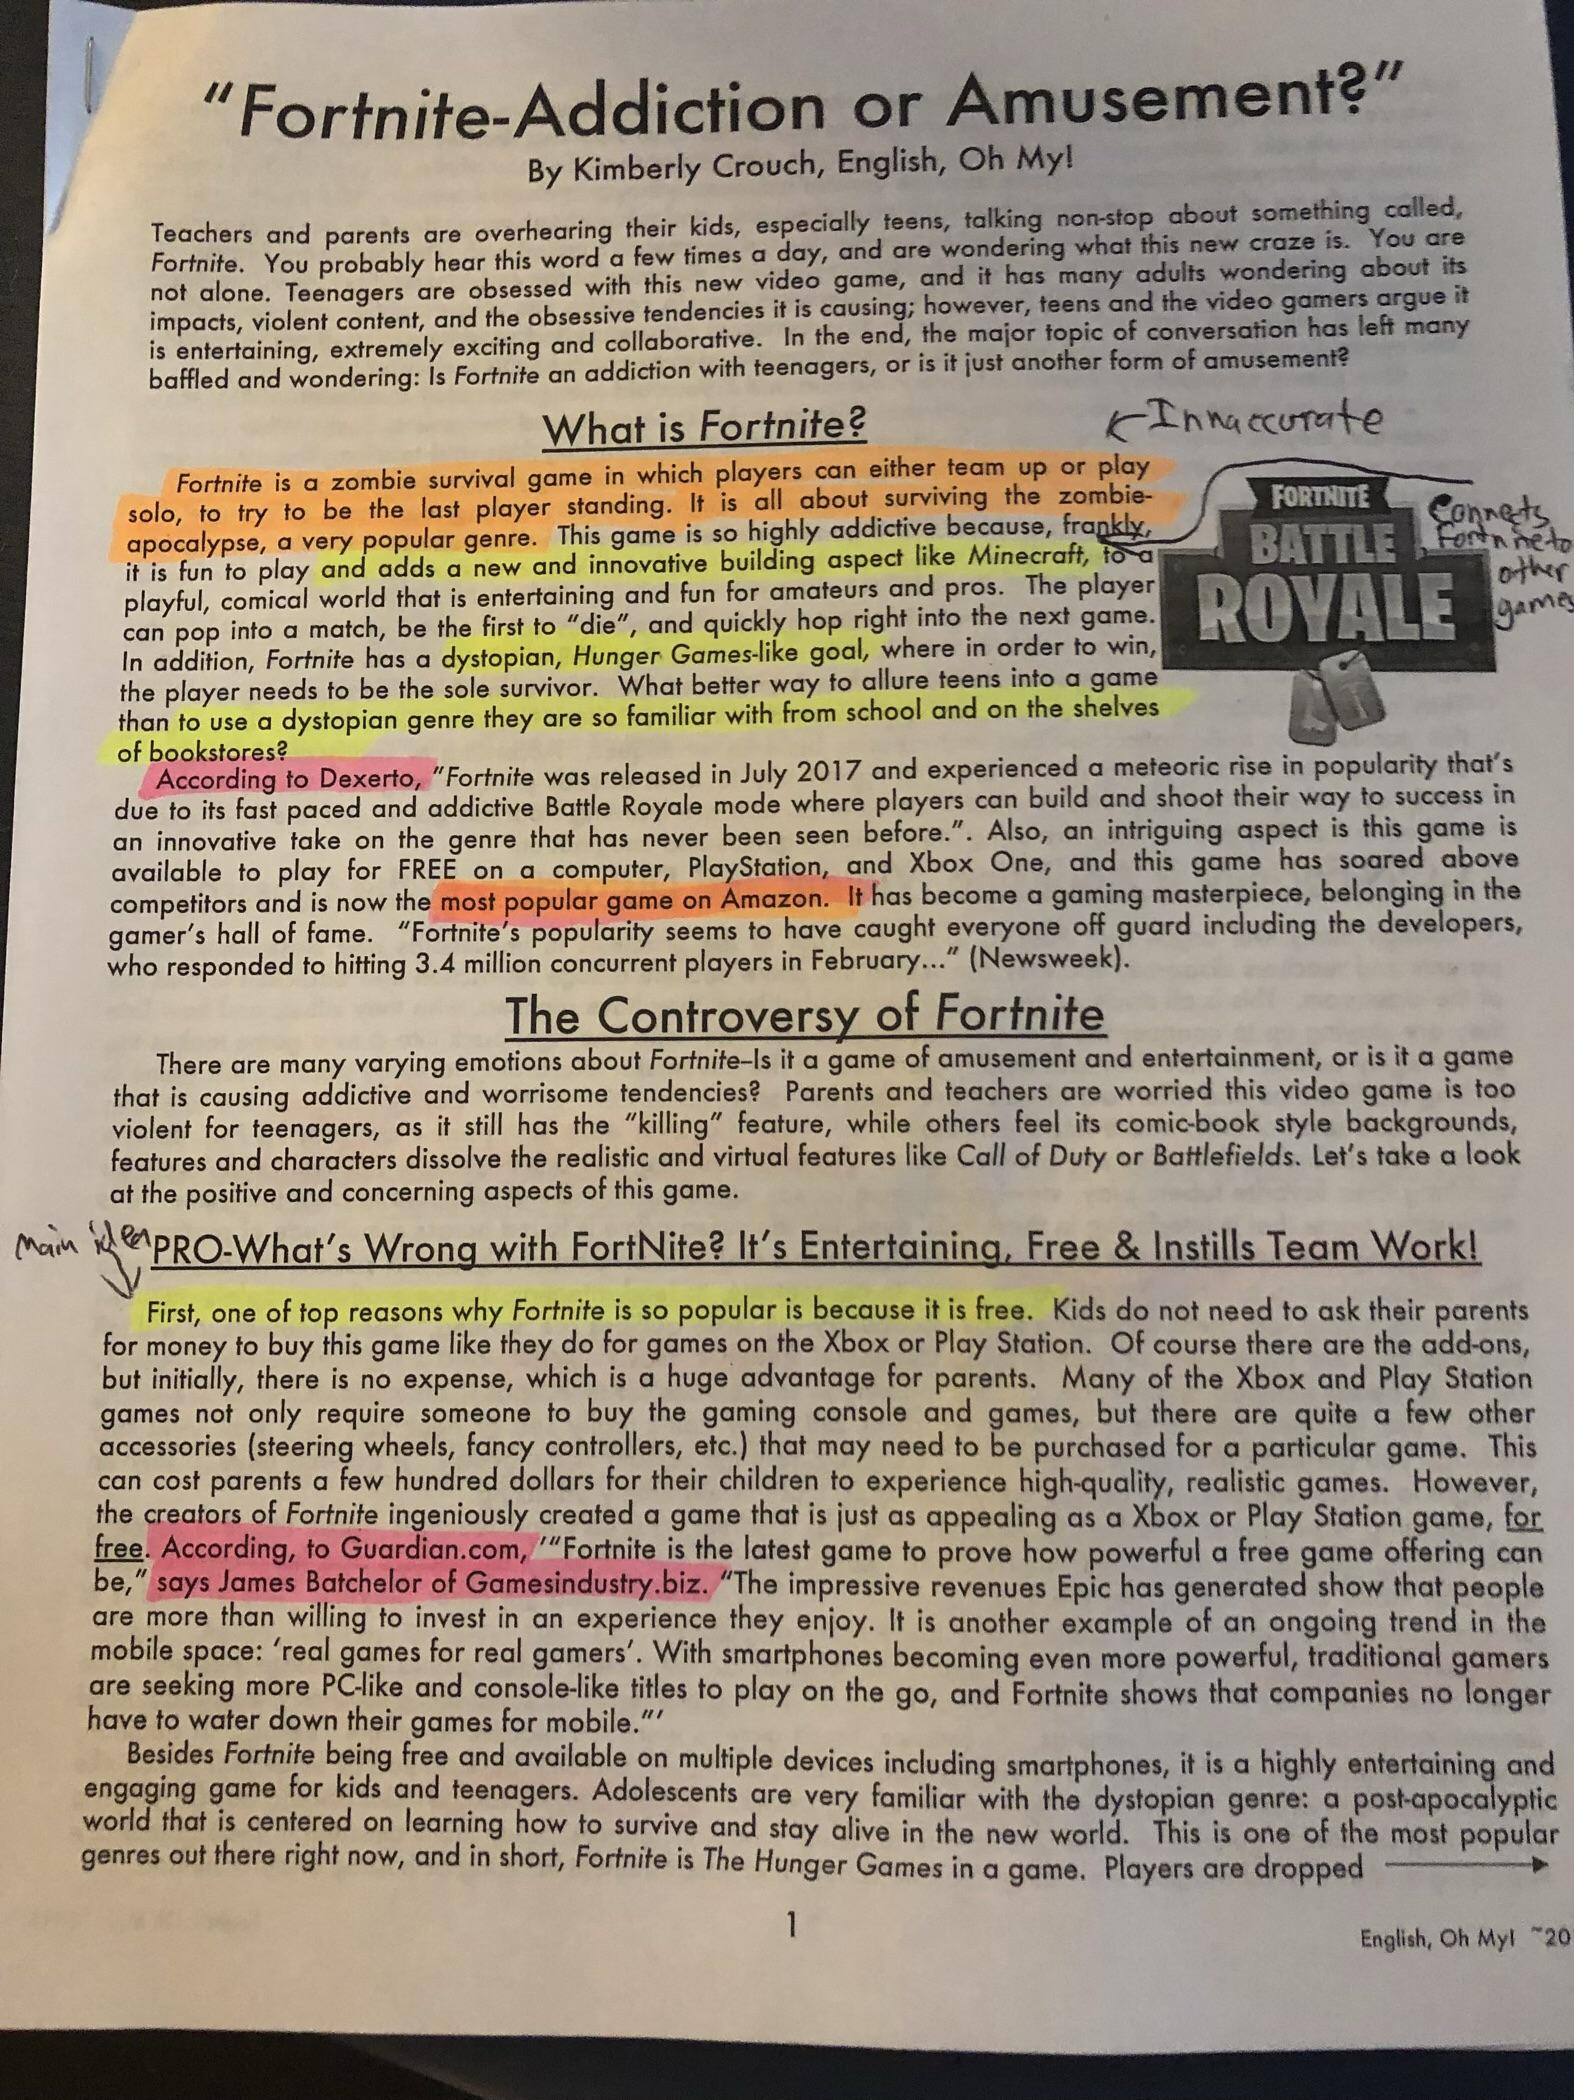 015 G47dmb8a0jk11 How To Annotate An Essay Wondrous A Movie In Critical Full